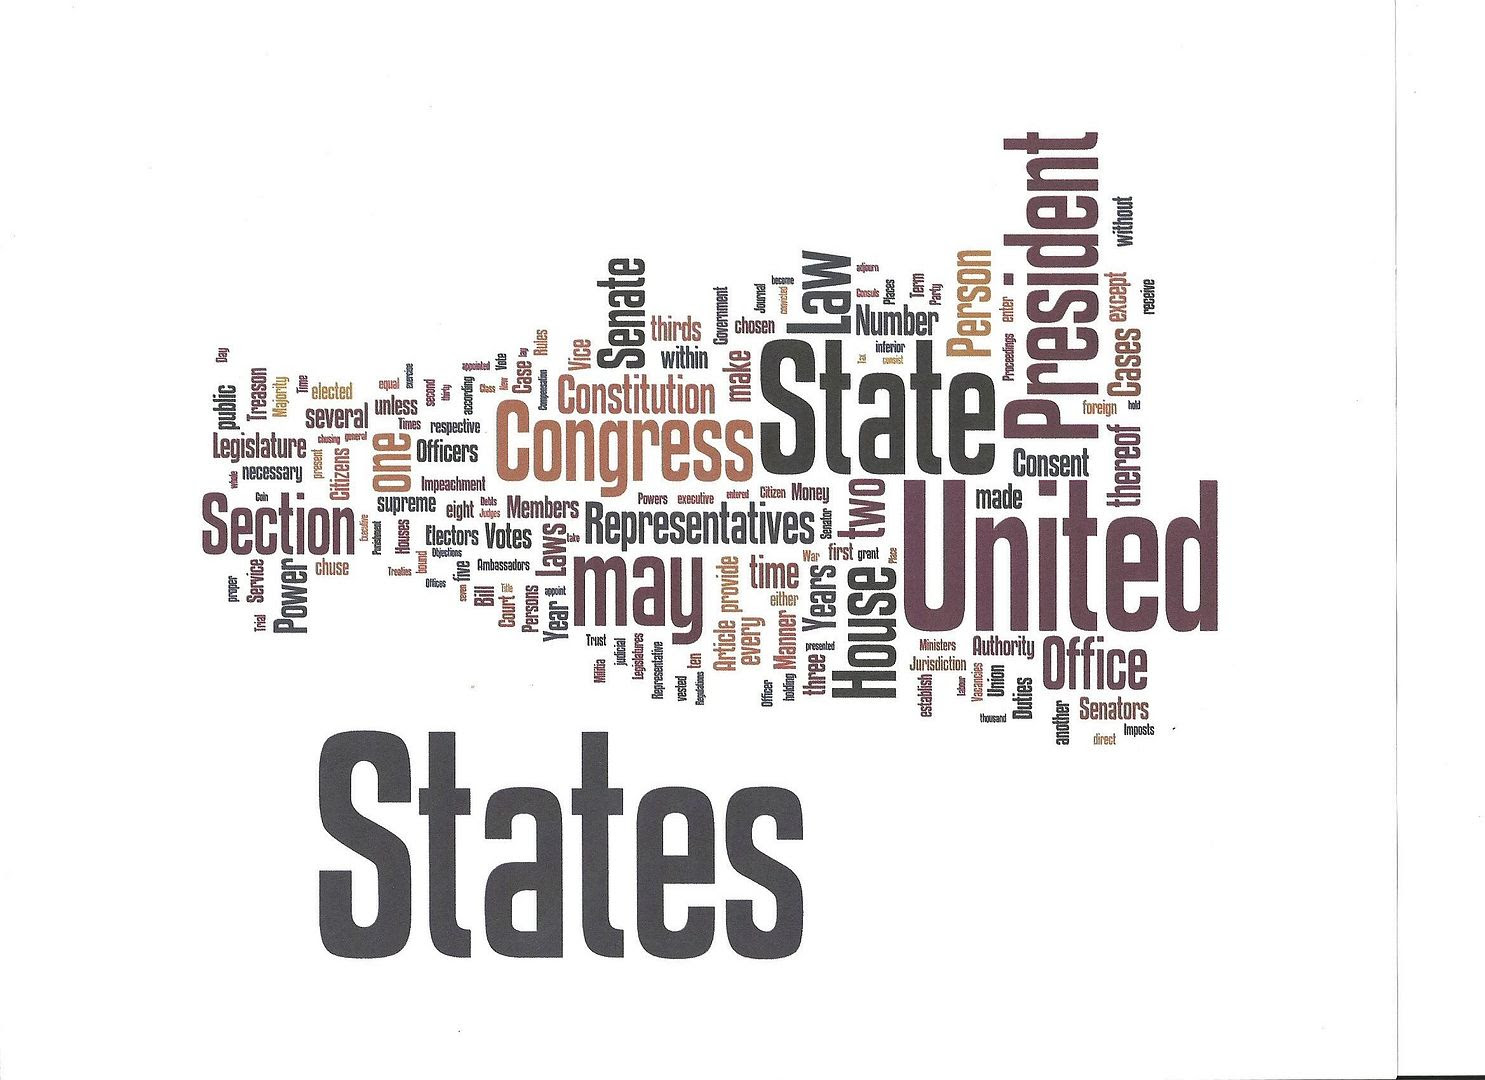 A wordle created using the words of the US Constitution